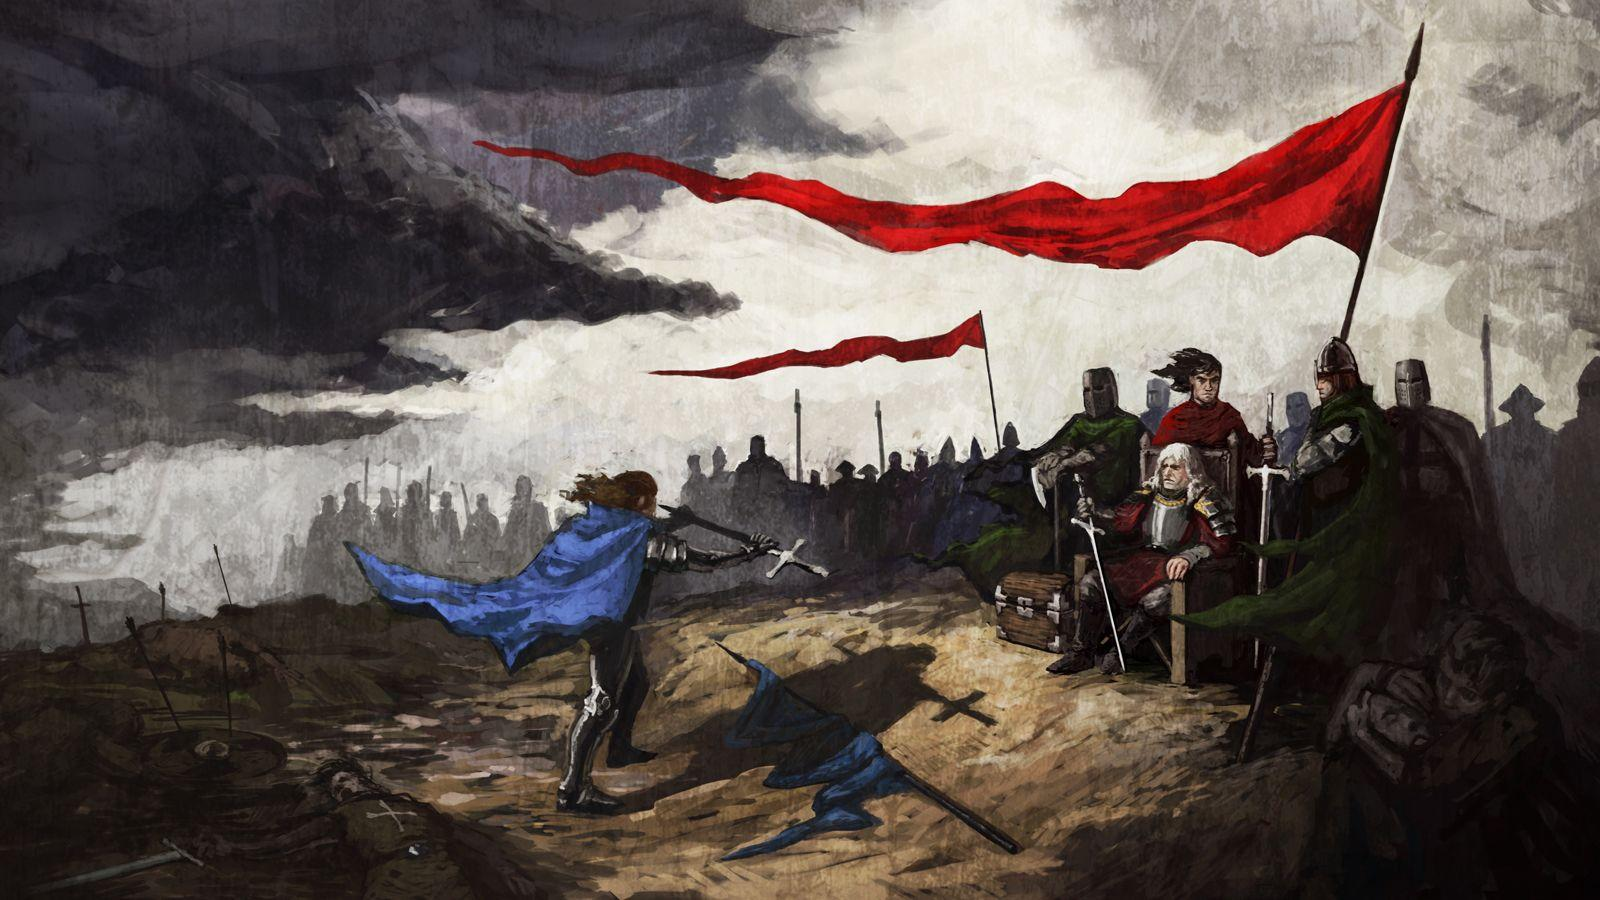 Crusader Kings II Wallpapers and Backgrounds Image